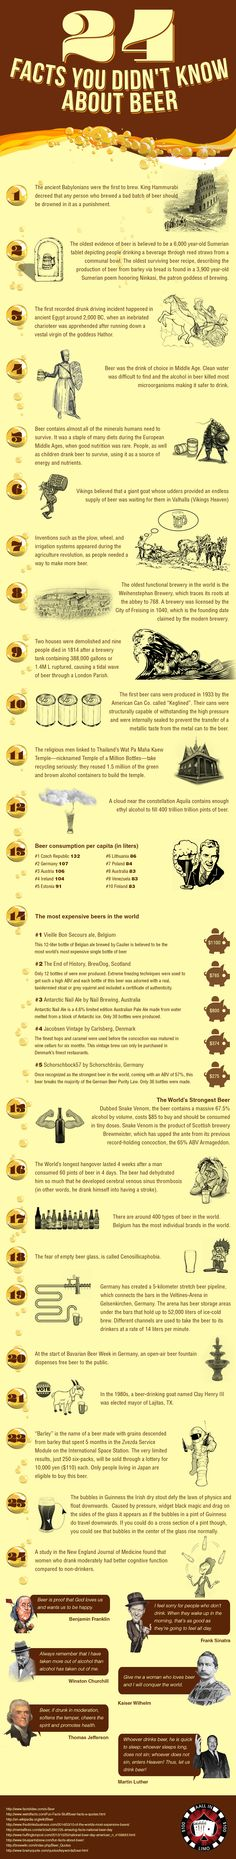 24 Facts You Didn't Know About #Beer